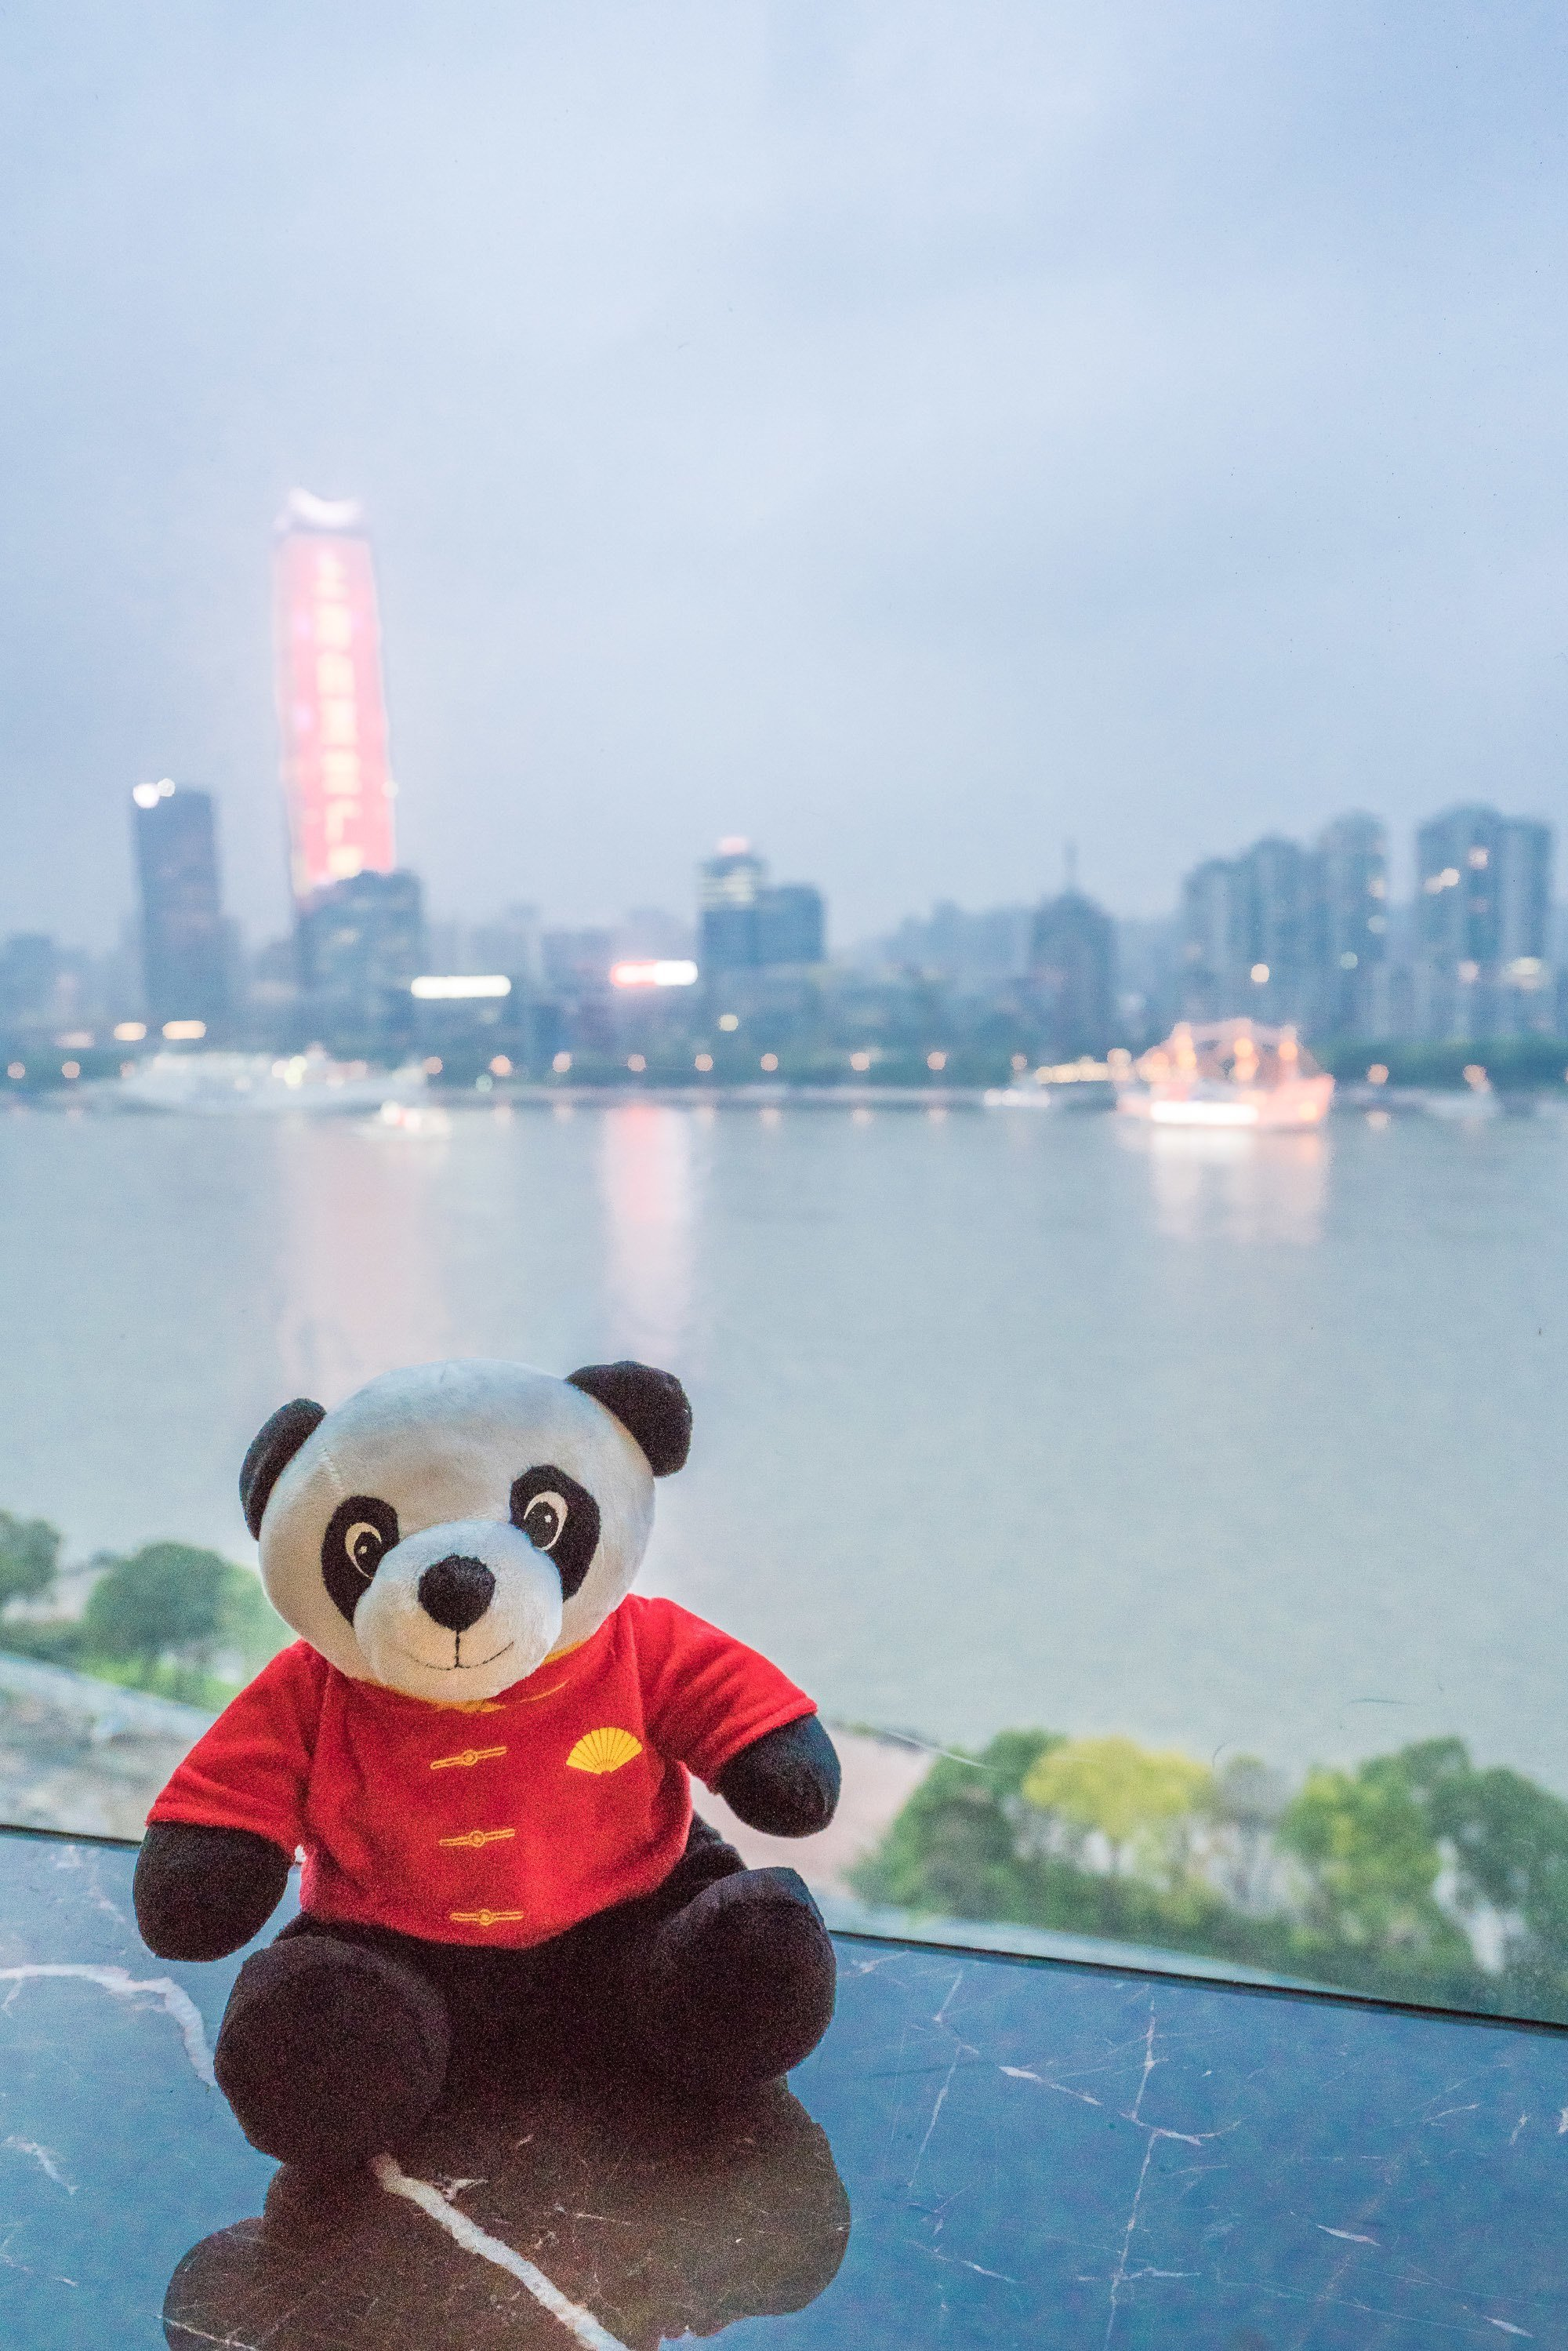 Momo the Panda and the view from Mandarin Oriental Pudong, Shanghai.